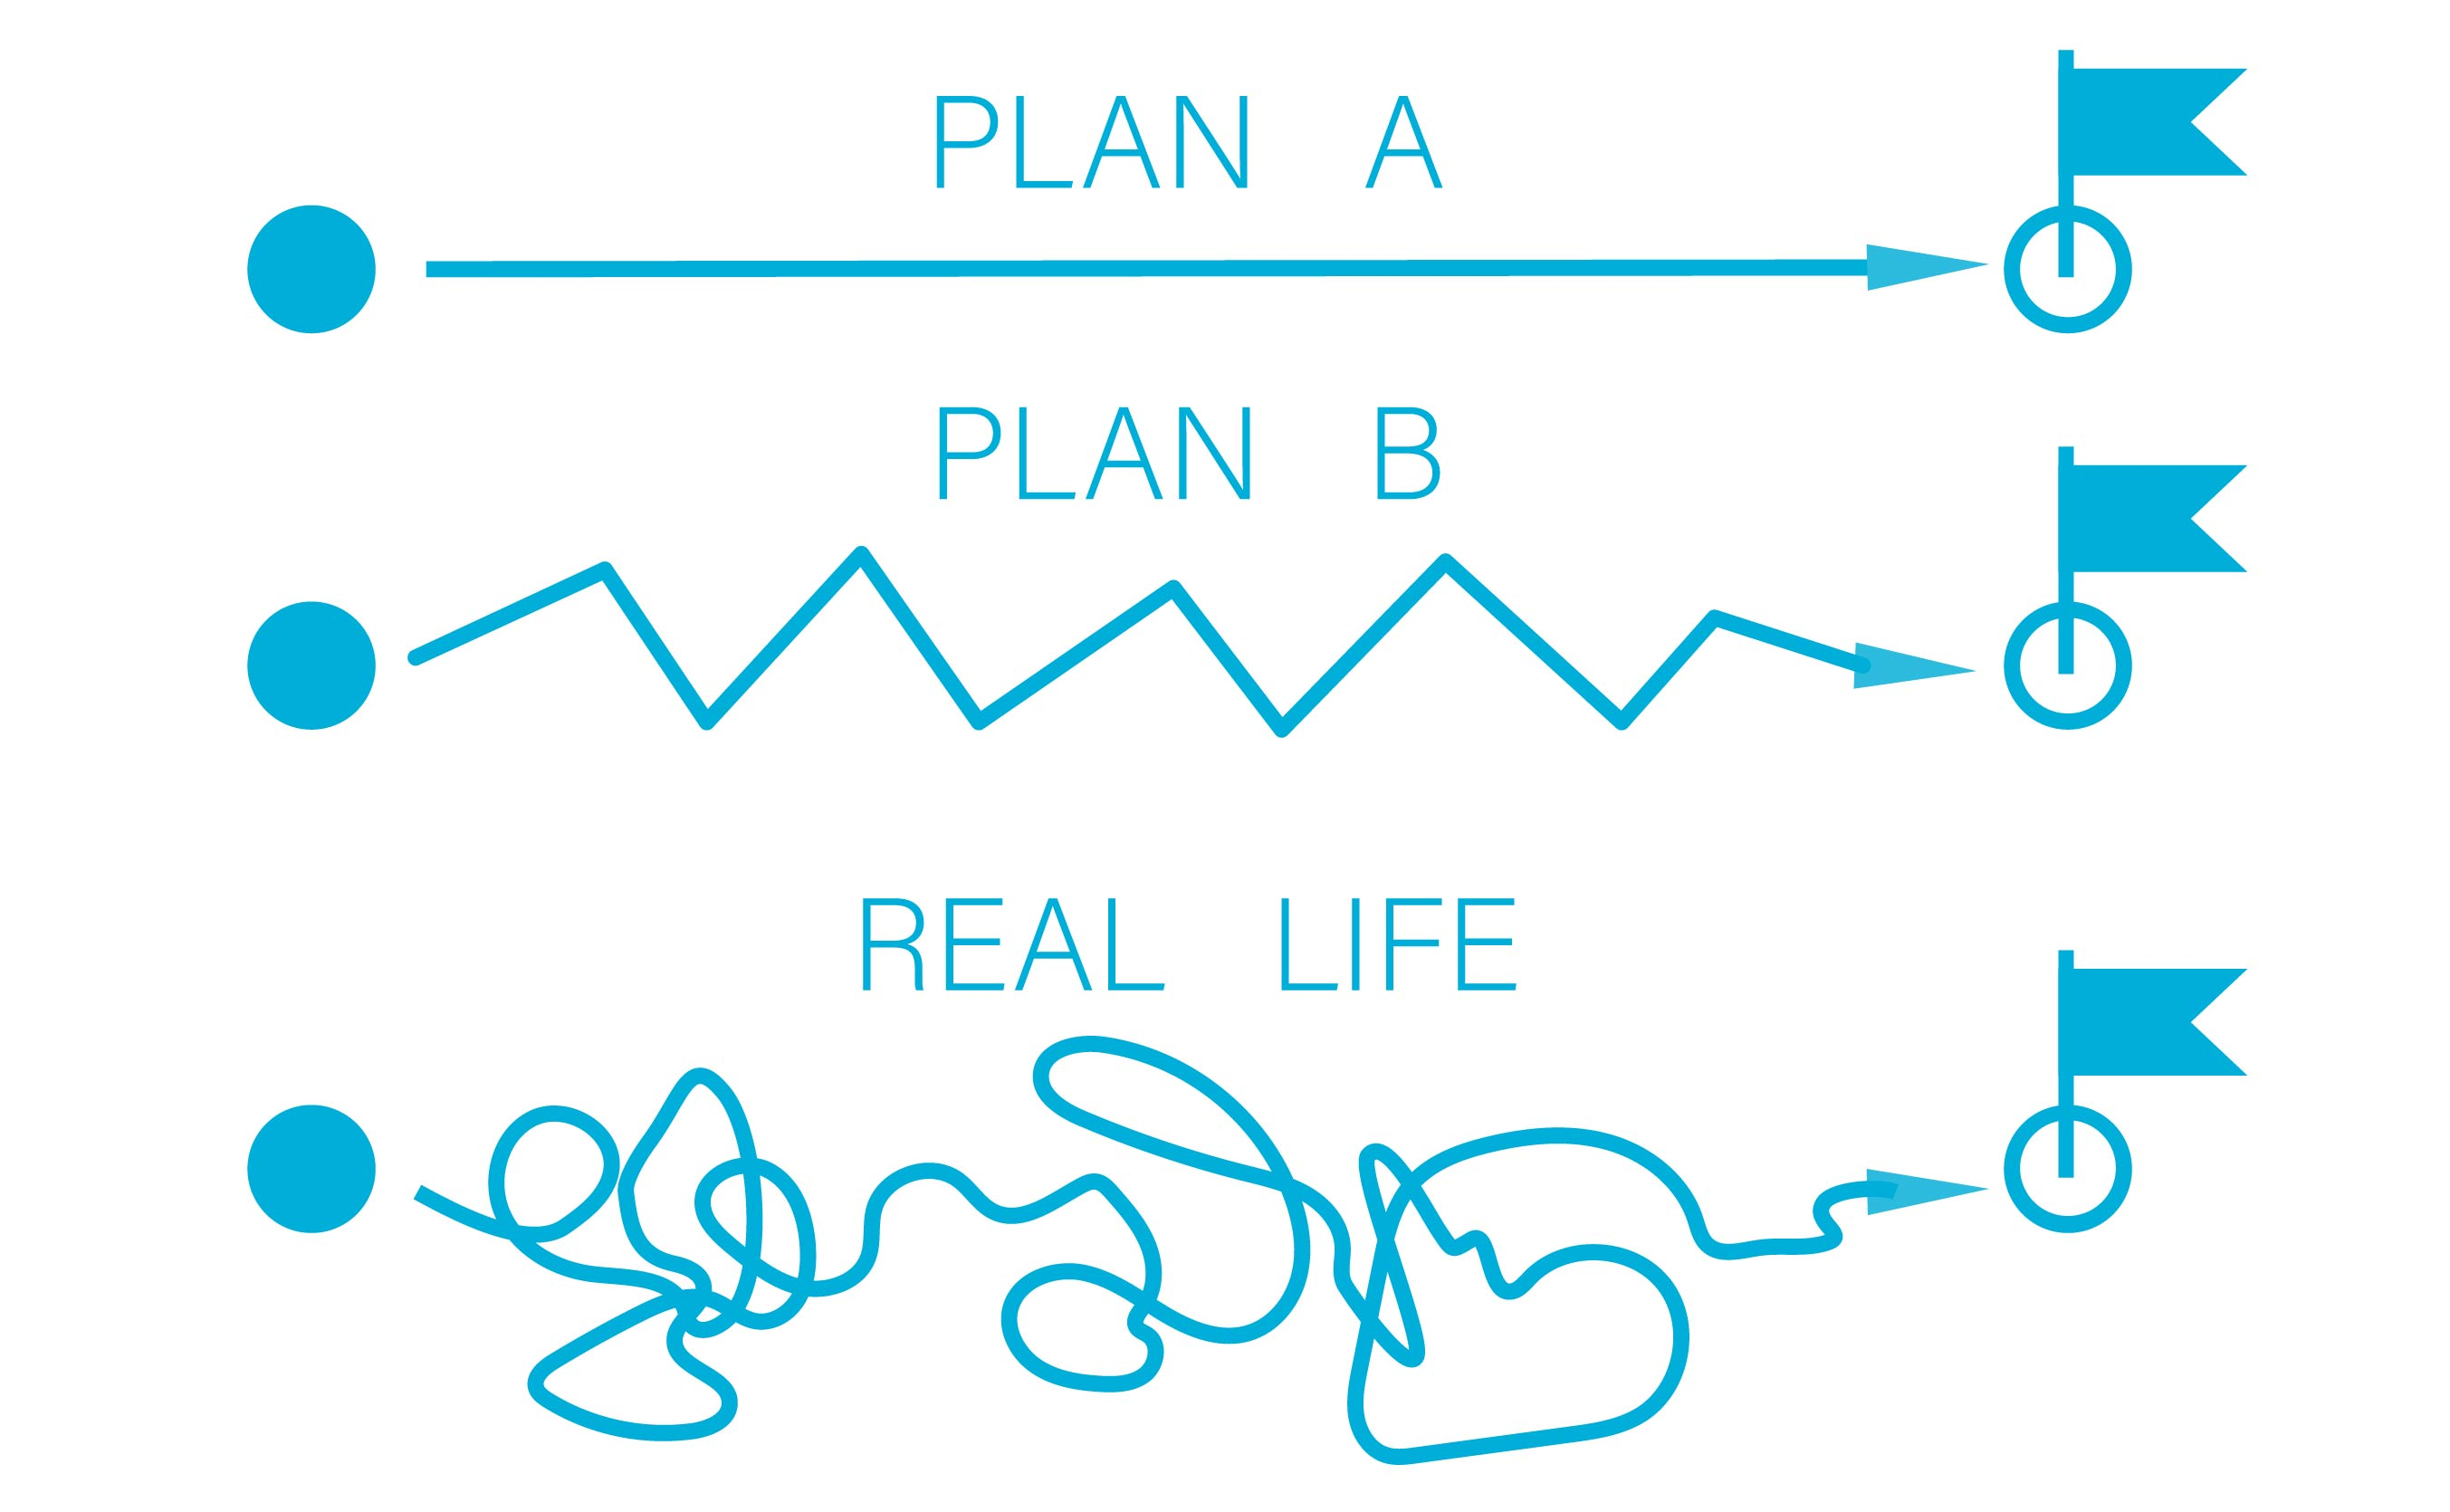 This image has three Plans: Plan A is an easy straight path. Plan B is a bit more jagged, but gets us from start to finish. Plan C is called Real Life and it looks more like a squiggly bunch of loops and missteps going backward and forward and all over the place before reaching the destination.